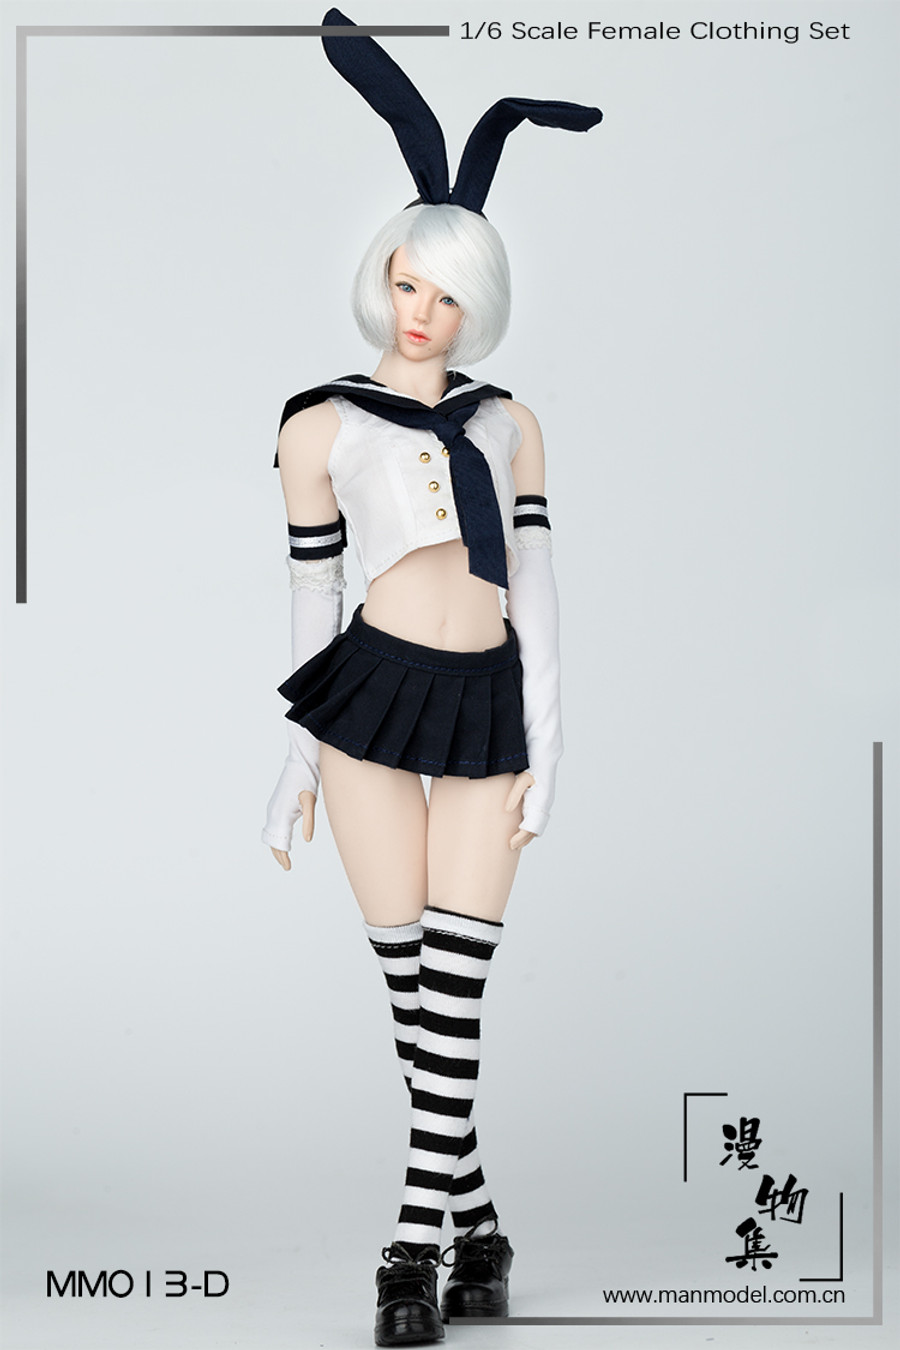 Manmodel - Sailor Suit